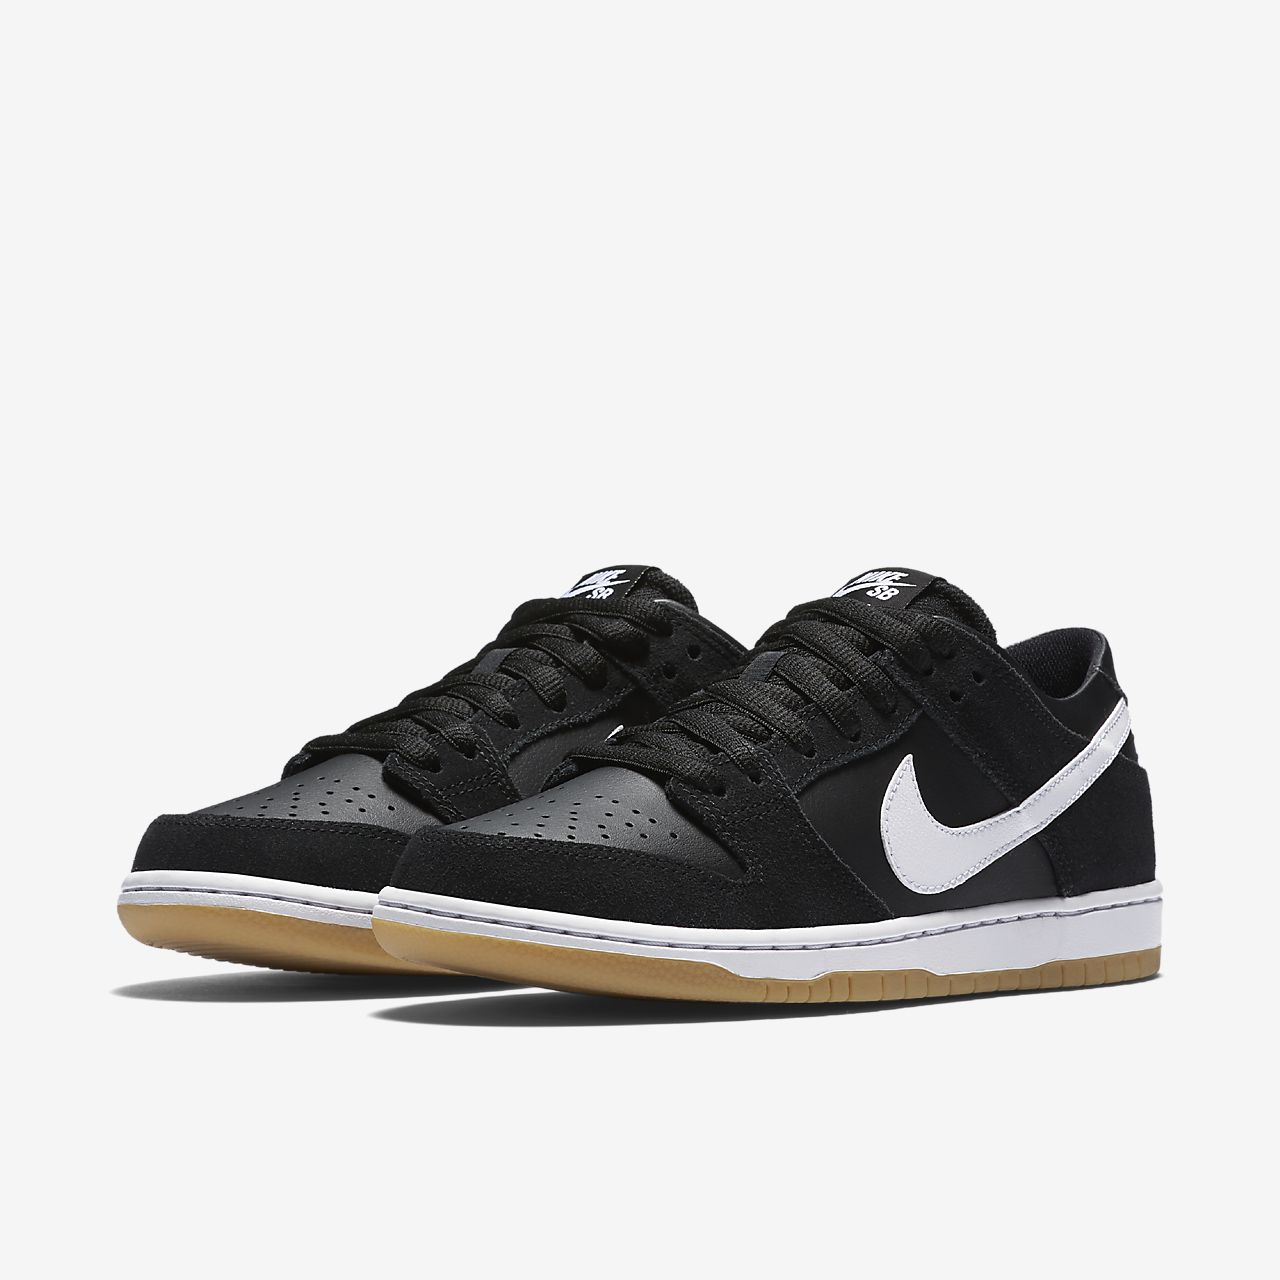 Discount Authentic Mens Nike Dunk Low Shoes Gold/Black